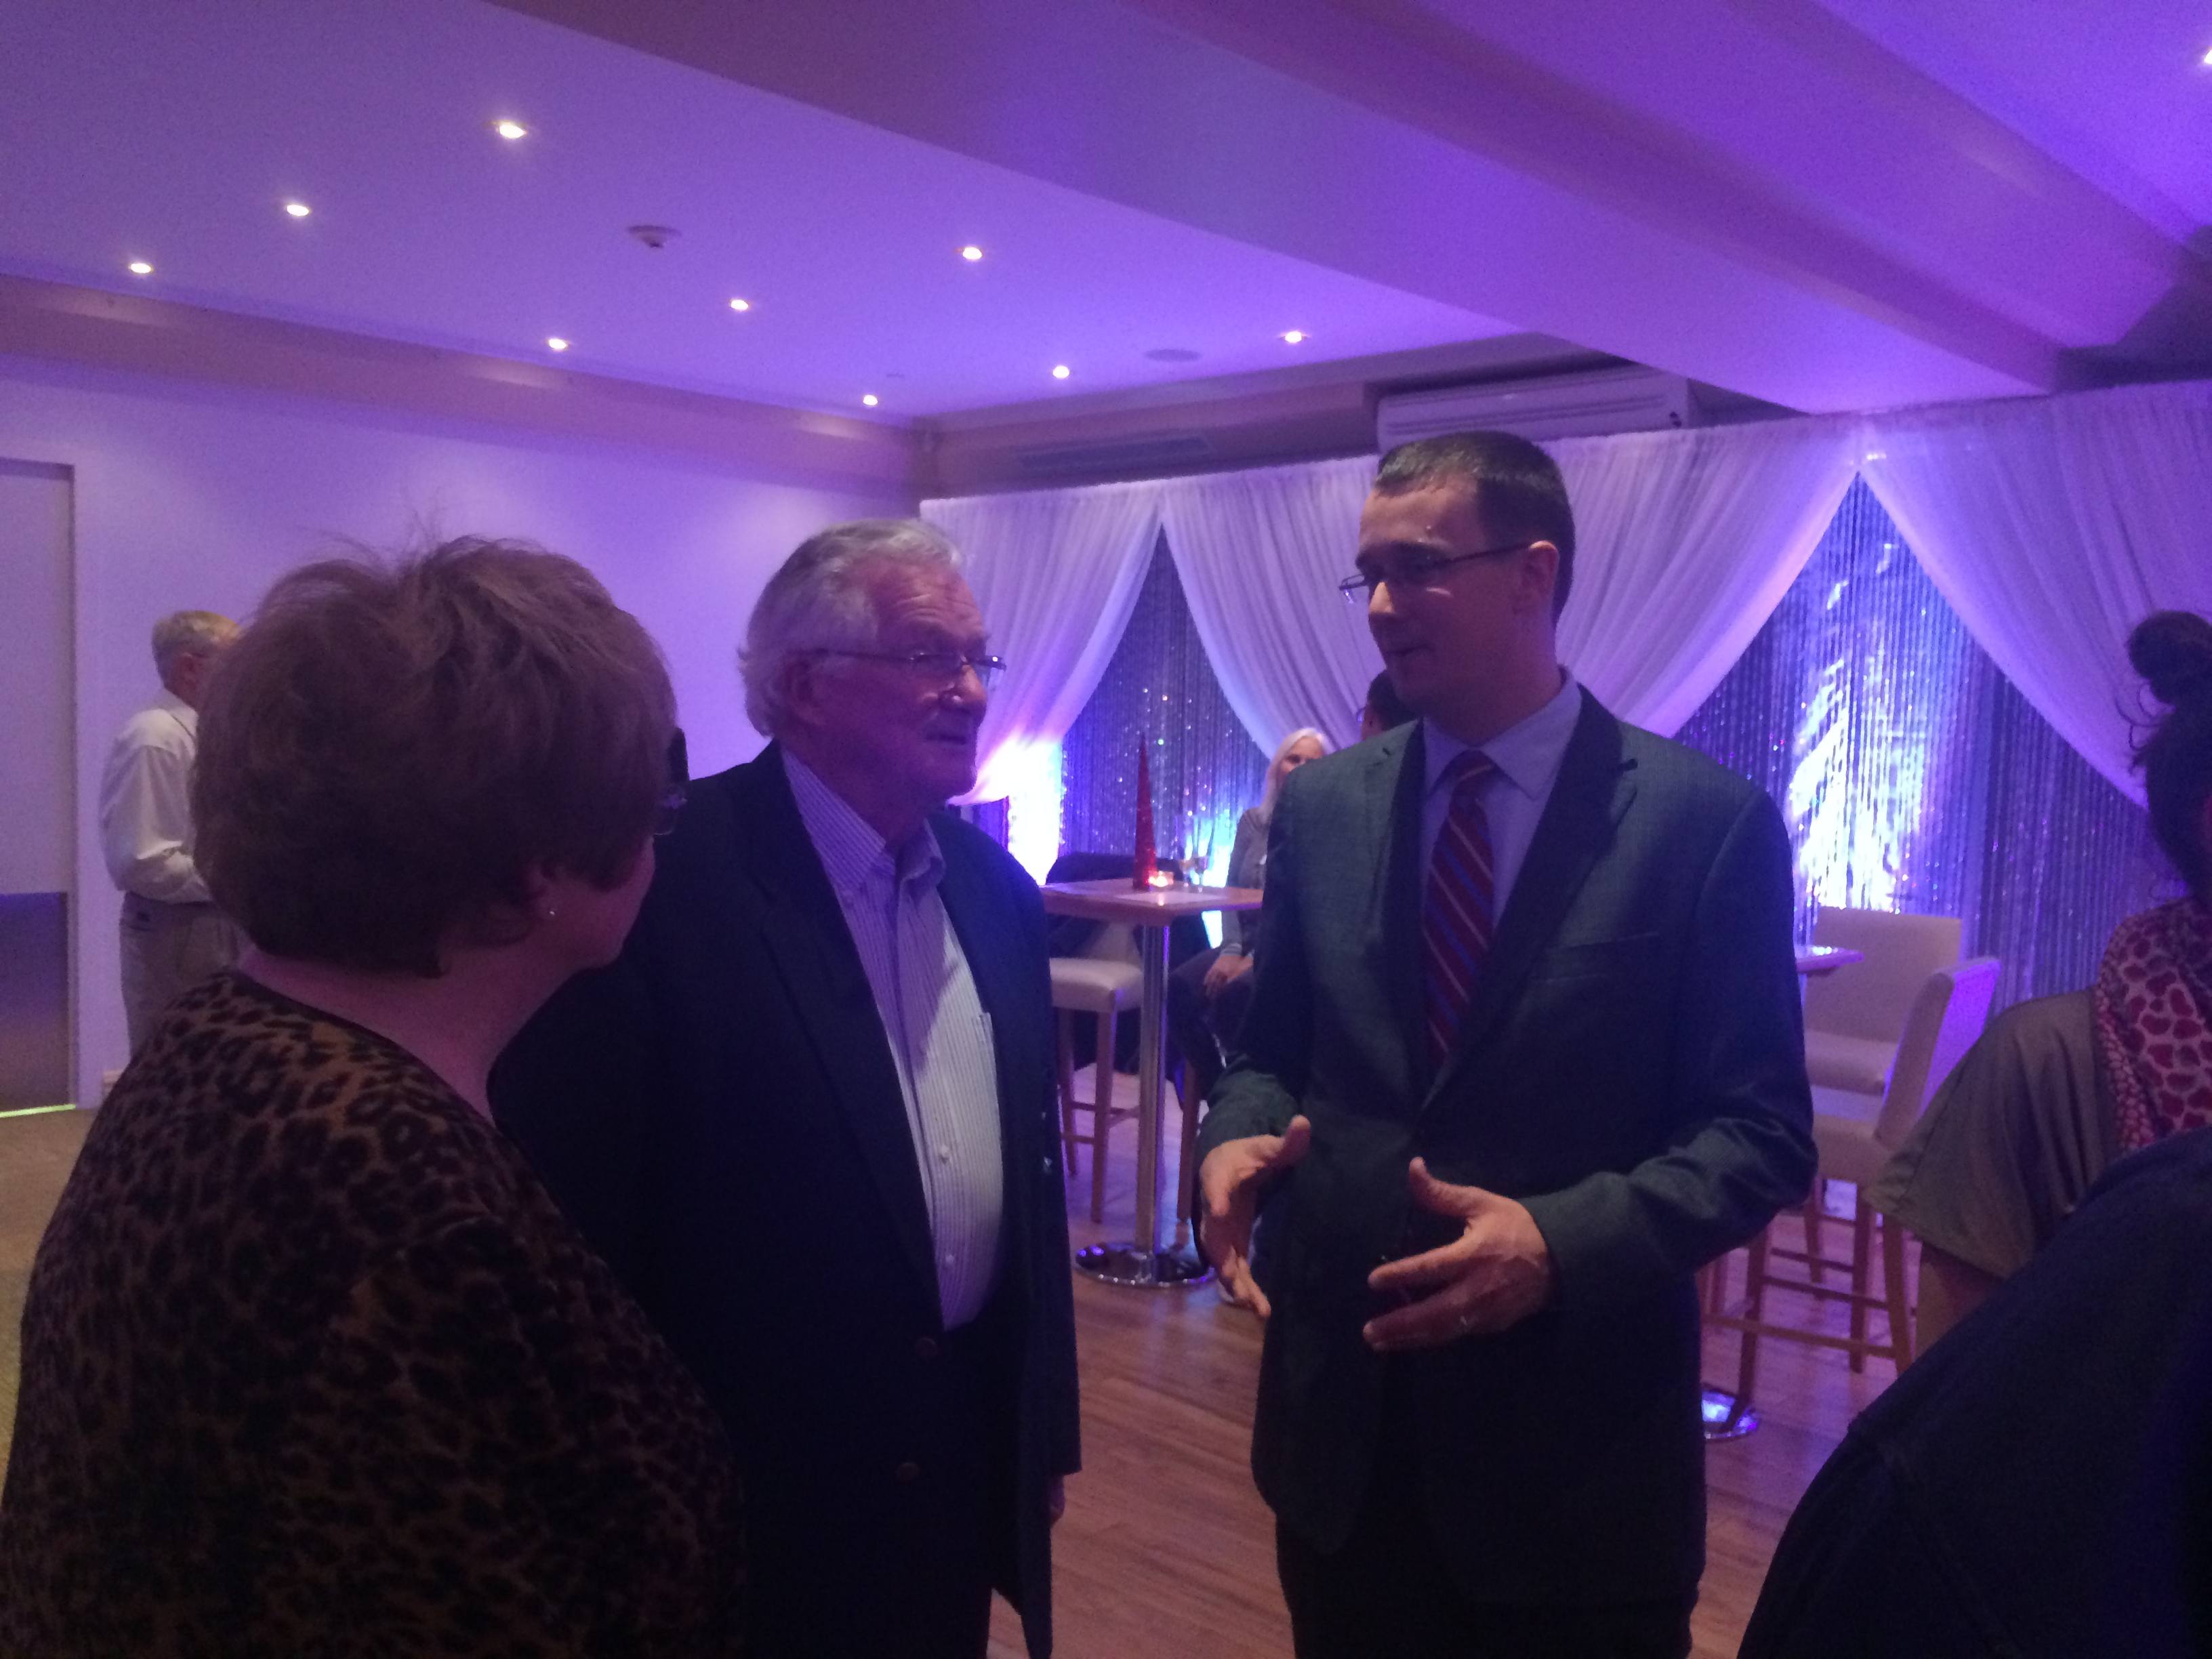 MPP and Ontario PC Party leadership candidate Monte McNaughton attends a meet and greet event in Chatham on November 24, 2014. (Photo by Ricardo Veneza)